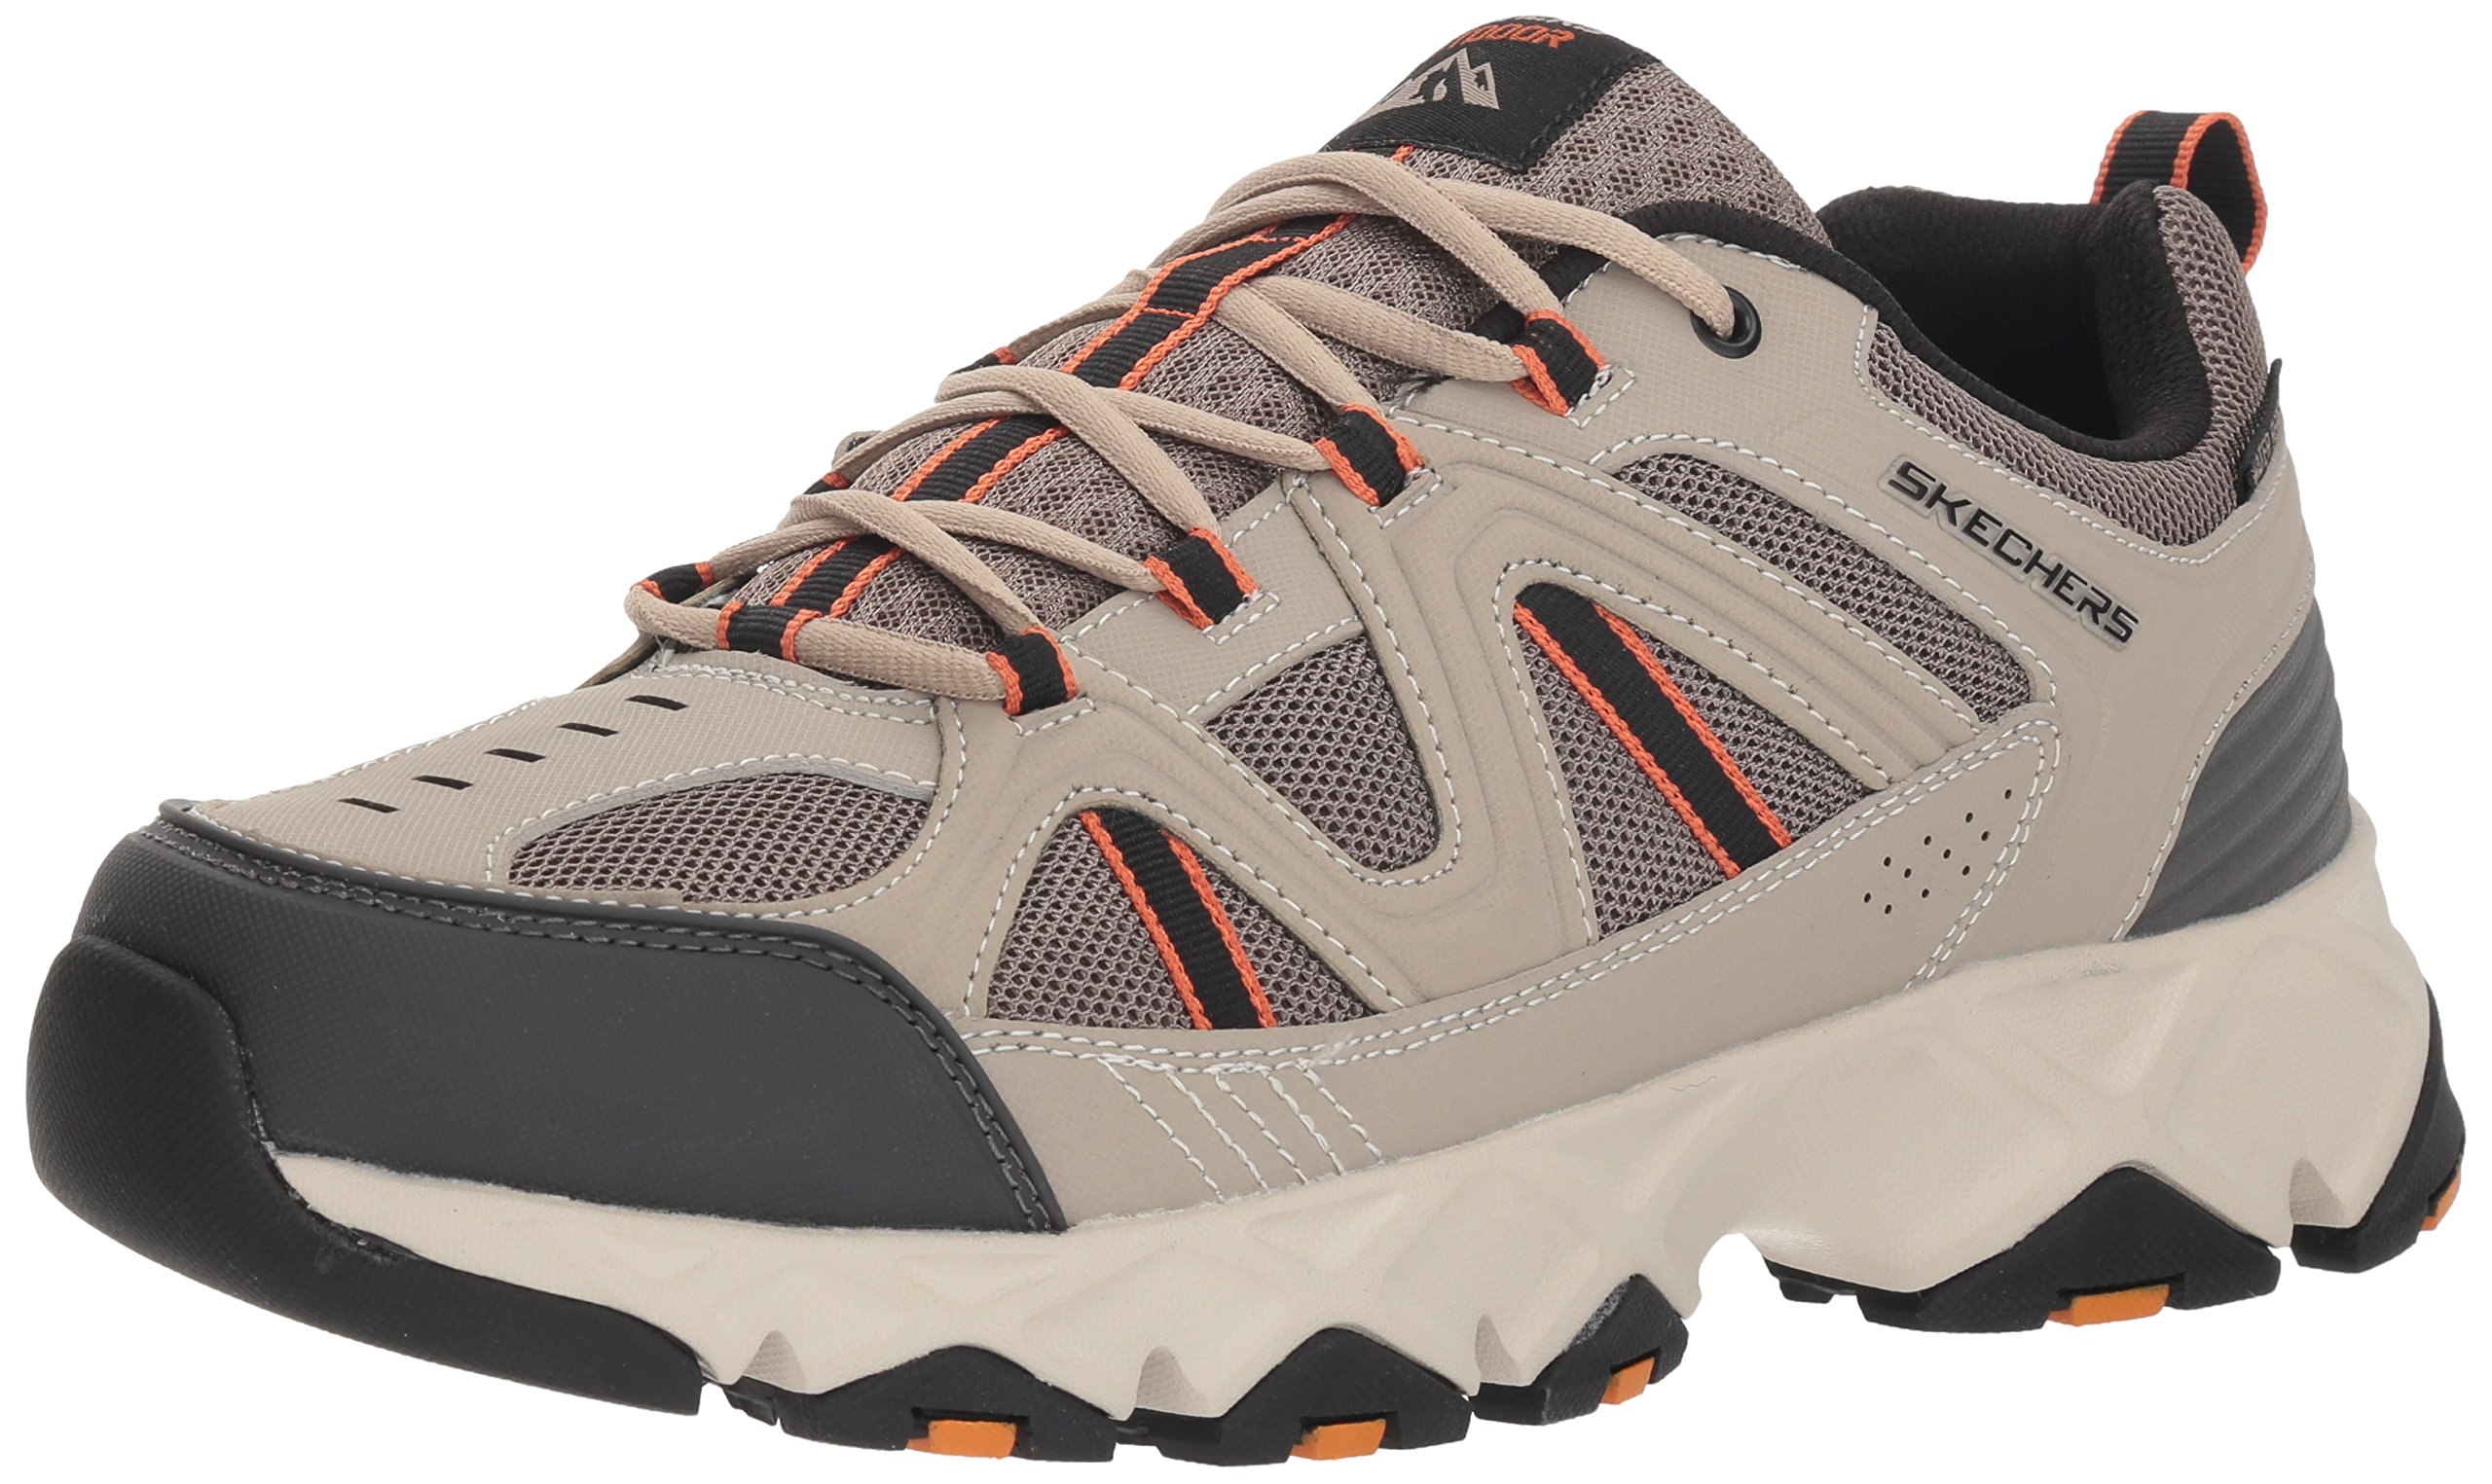 Skechers Men's Crossbar Oxford, Taupe/Black, 11.5 M US